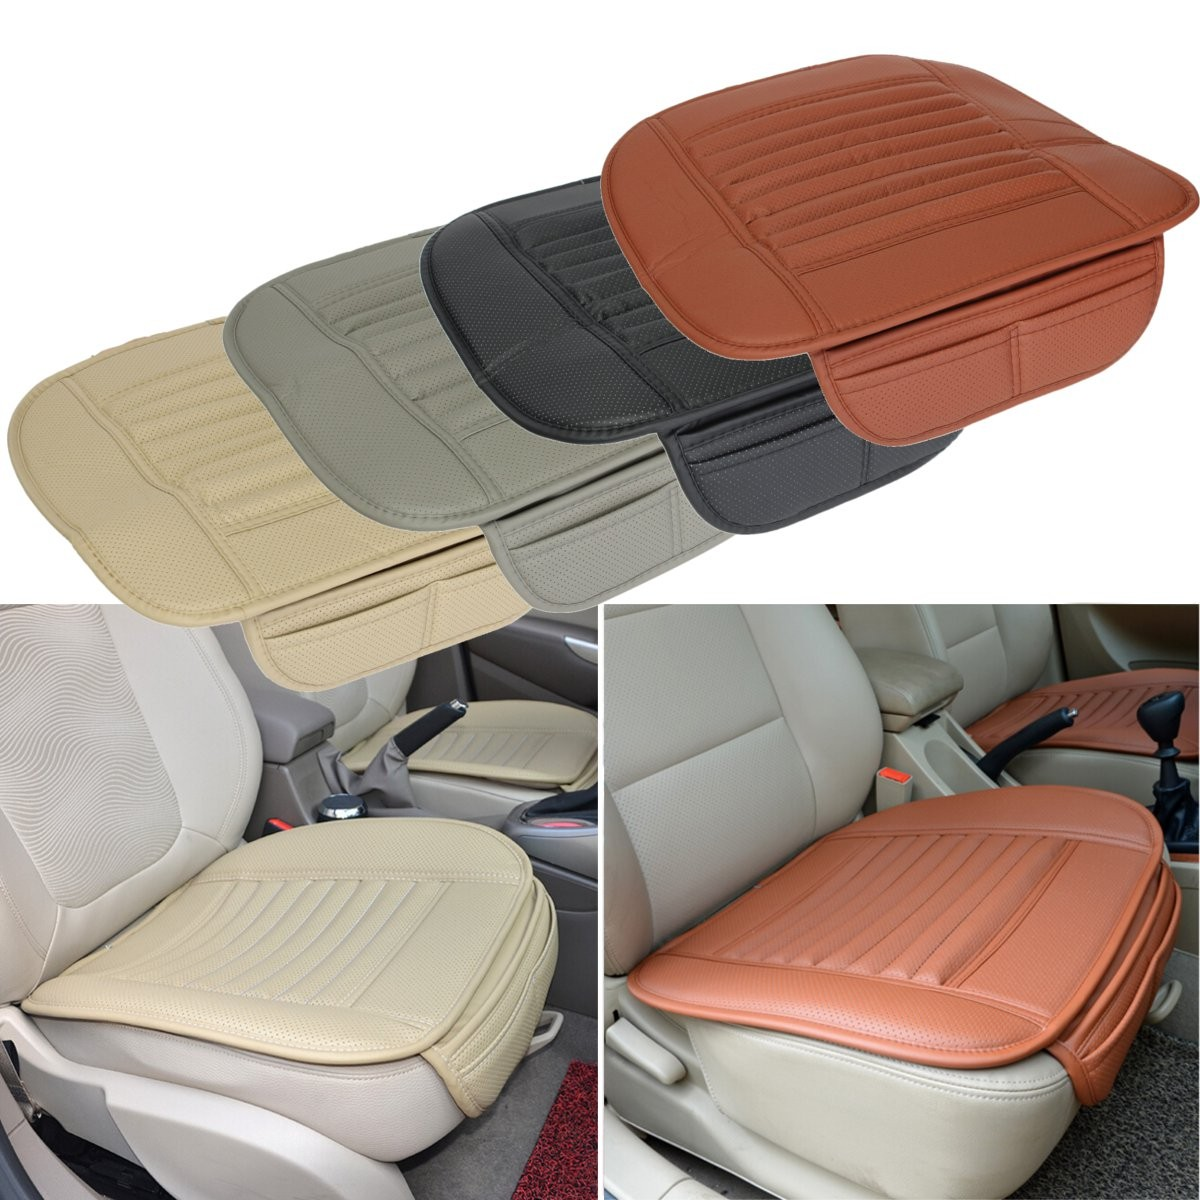 Universal Seatpad PU leather Car seat covers for Auto Car Office Chairs Interior yuzhe leather car seat cover for mitsubishi lancer outlander pajero eclipse zinger verada asx i200 car accessories styling